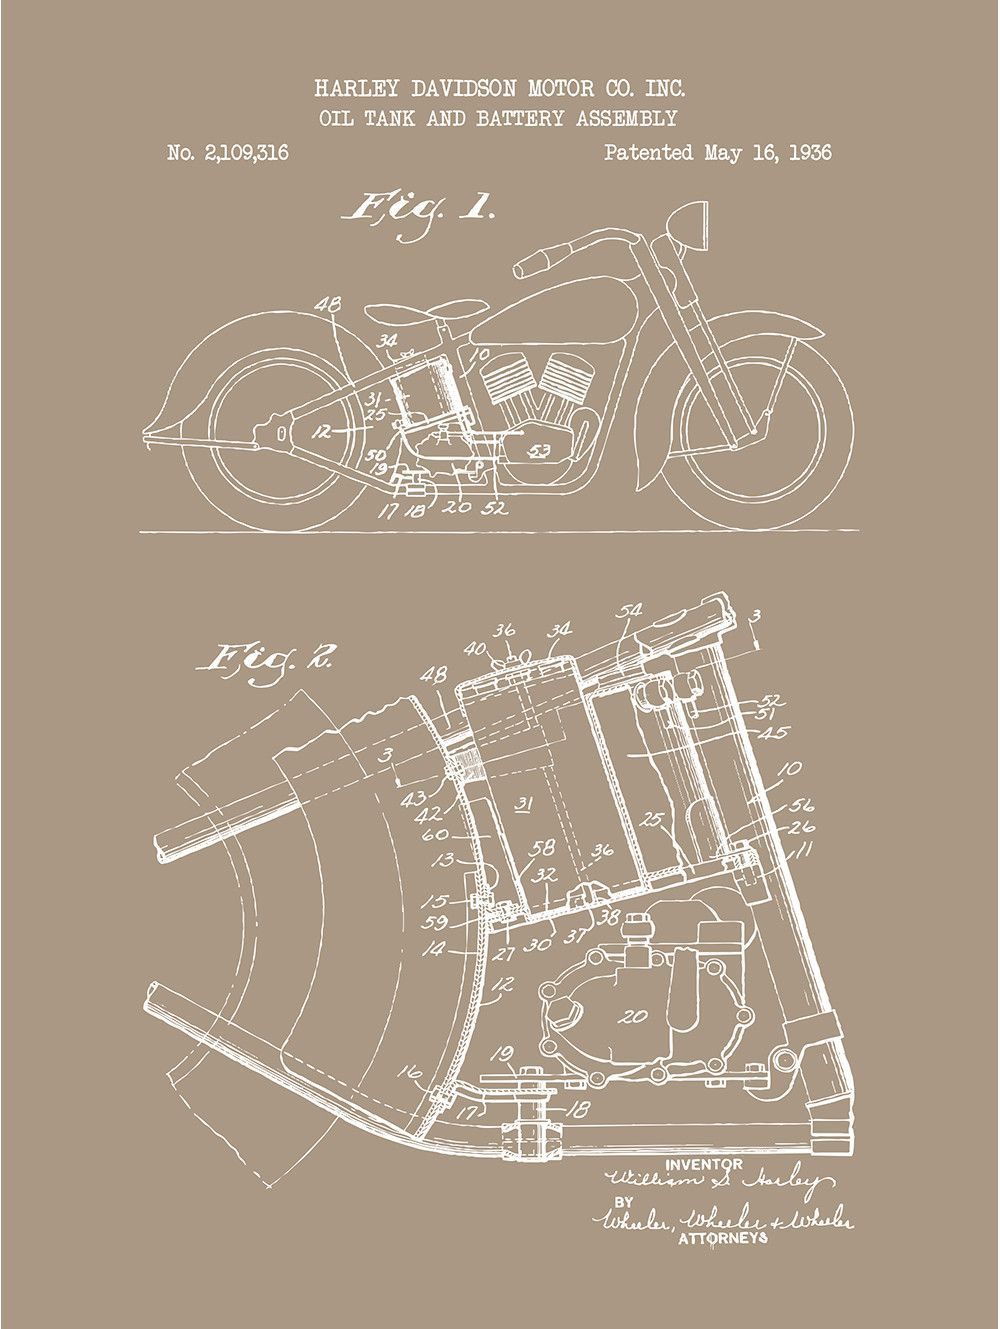 small resolution of oil tank and battery assembly harley davidson motor co 1936